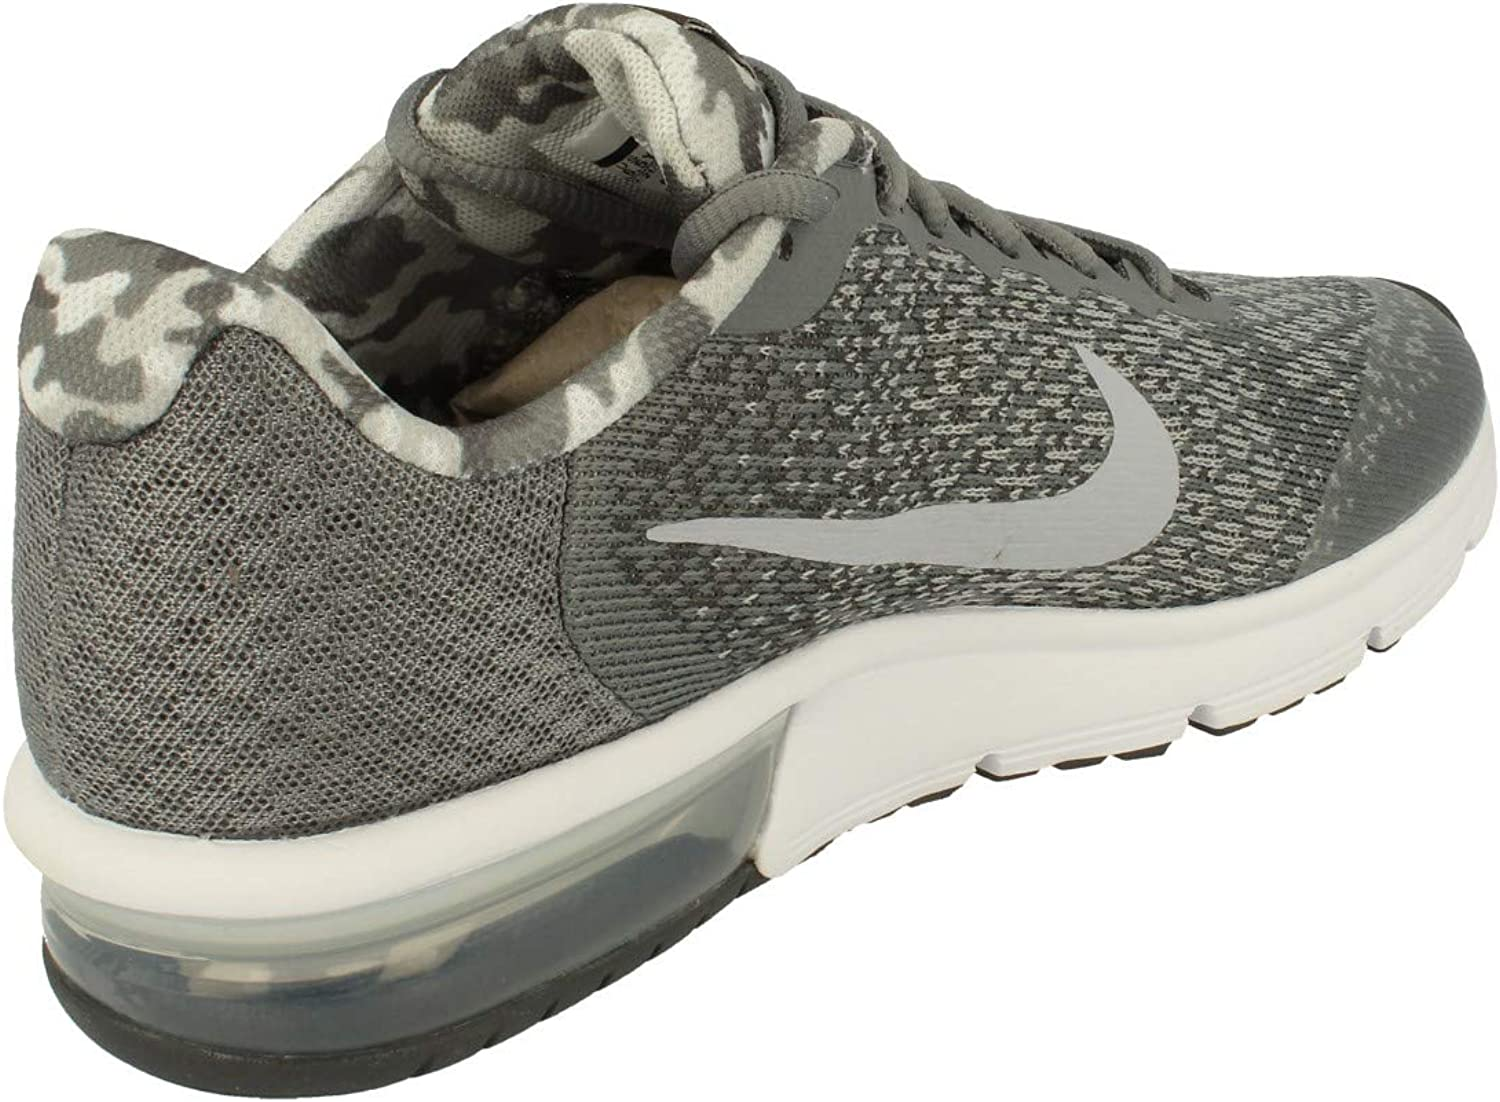 Nike Air Max Sequent 2 BG, Sneakers Basses Homme